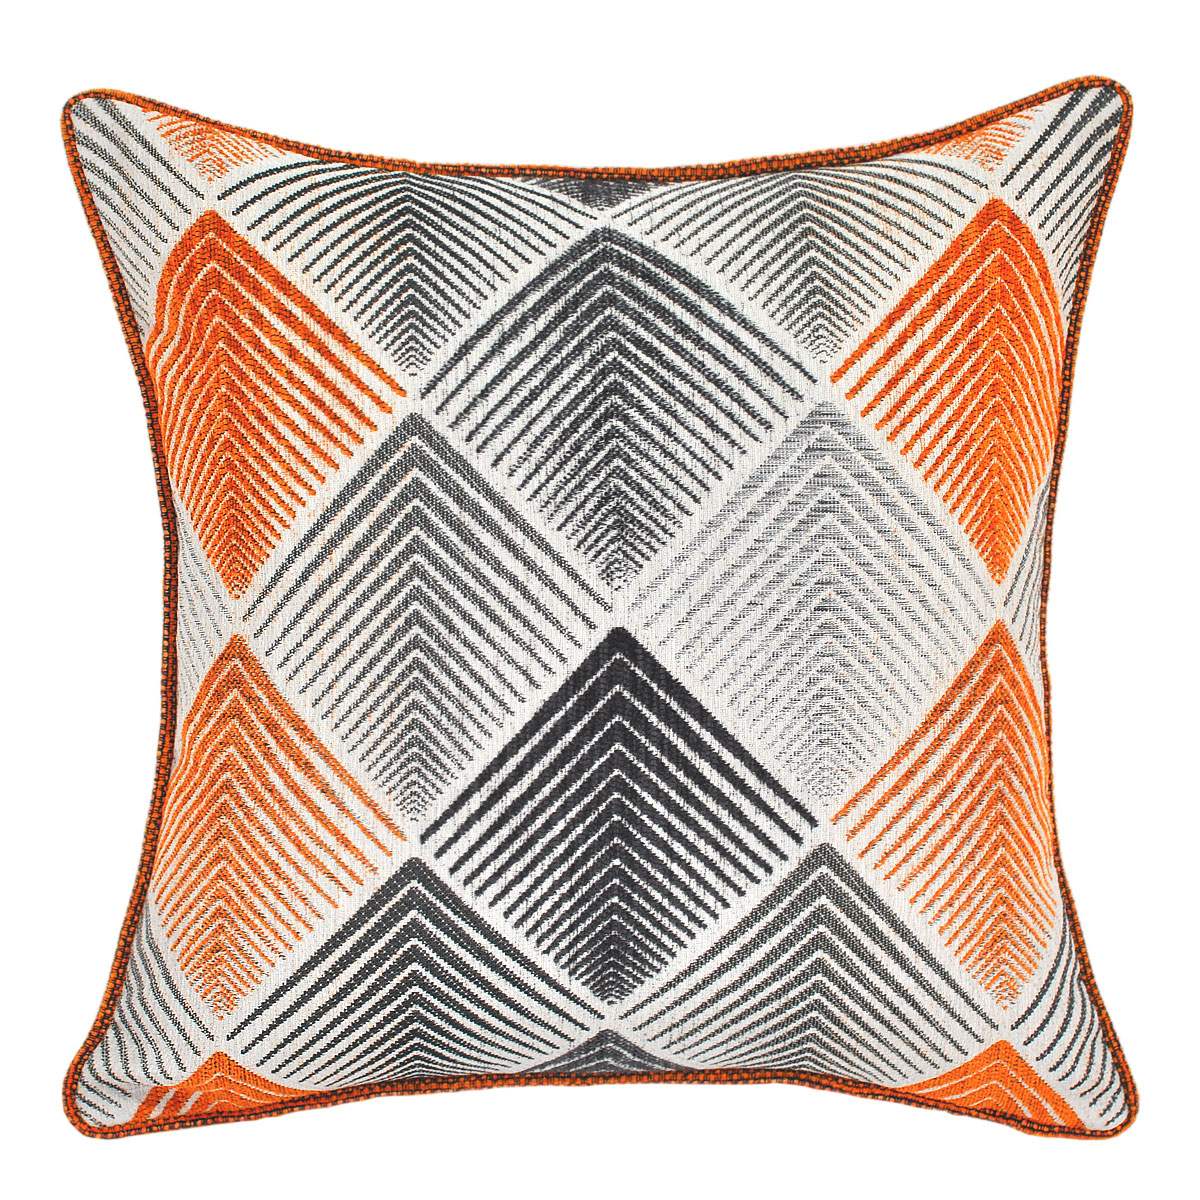 Aspire Mango Cushion - 45x45cm